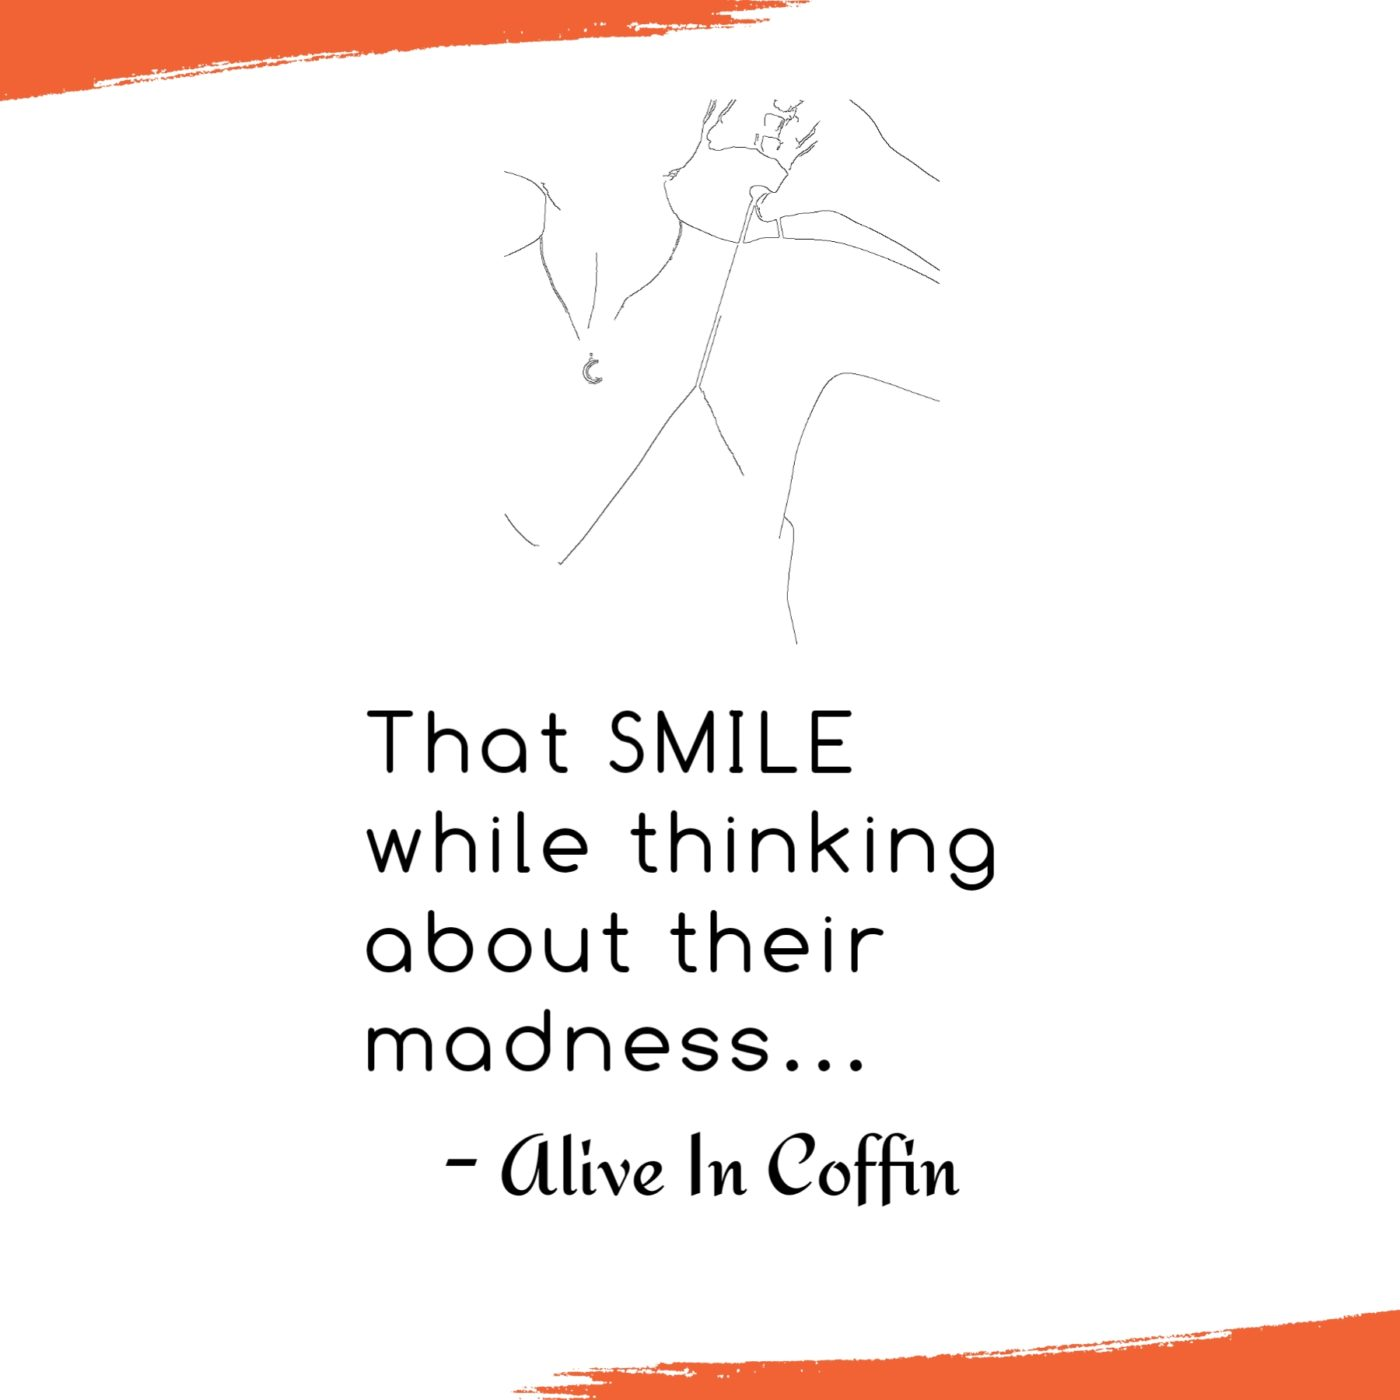 Short Poem about smile and the madness.